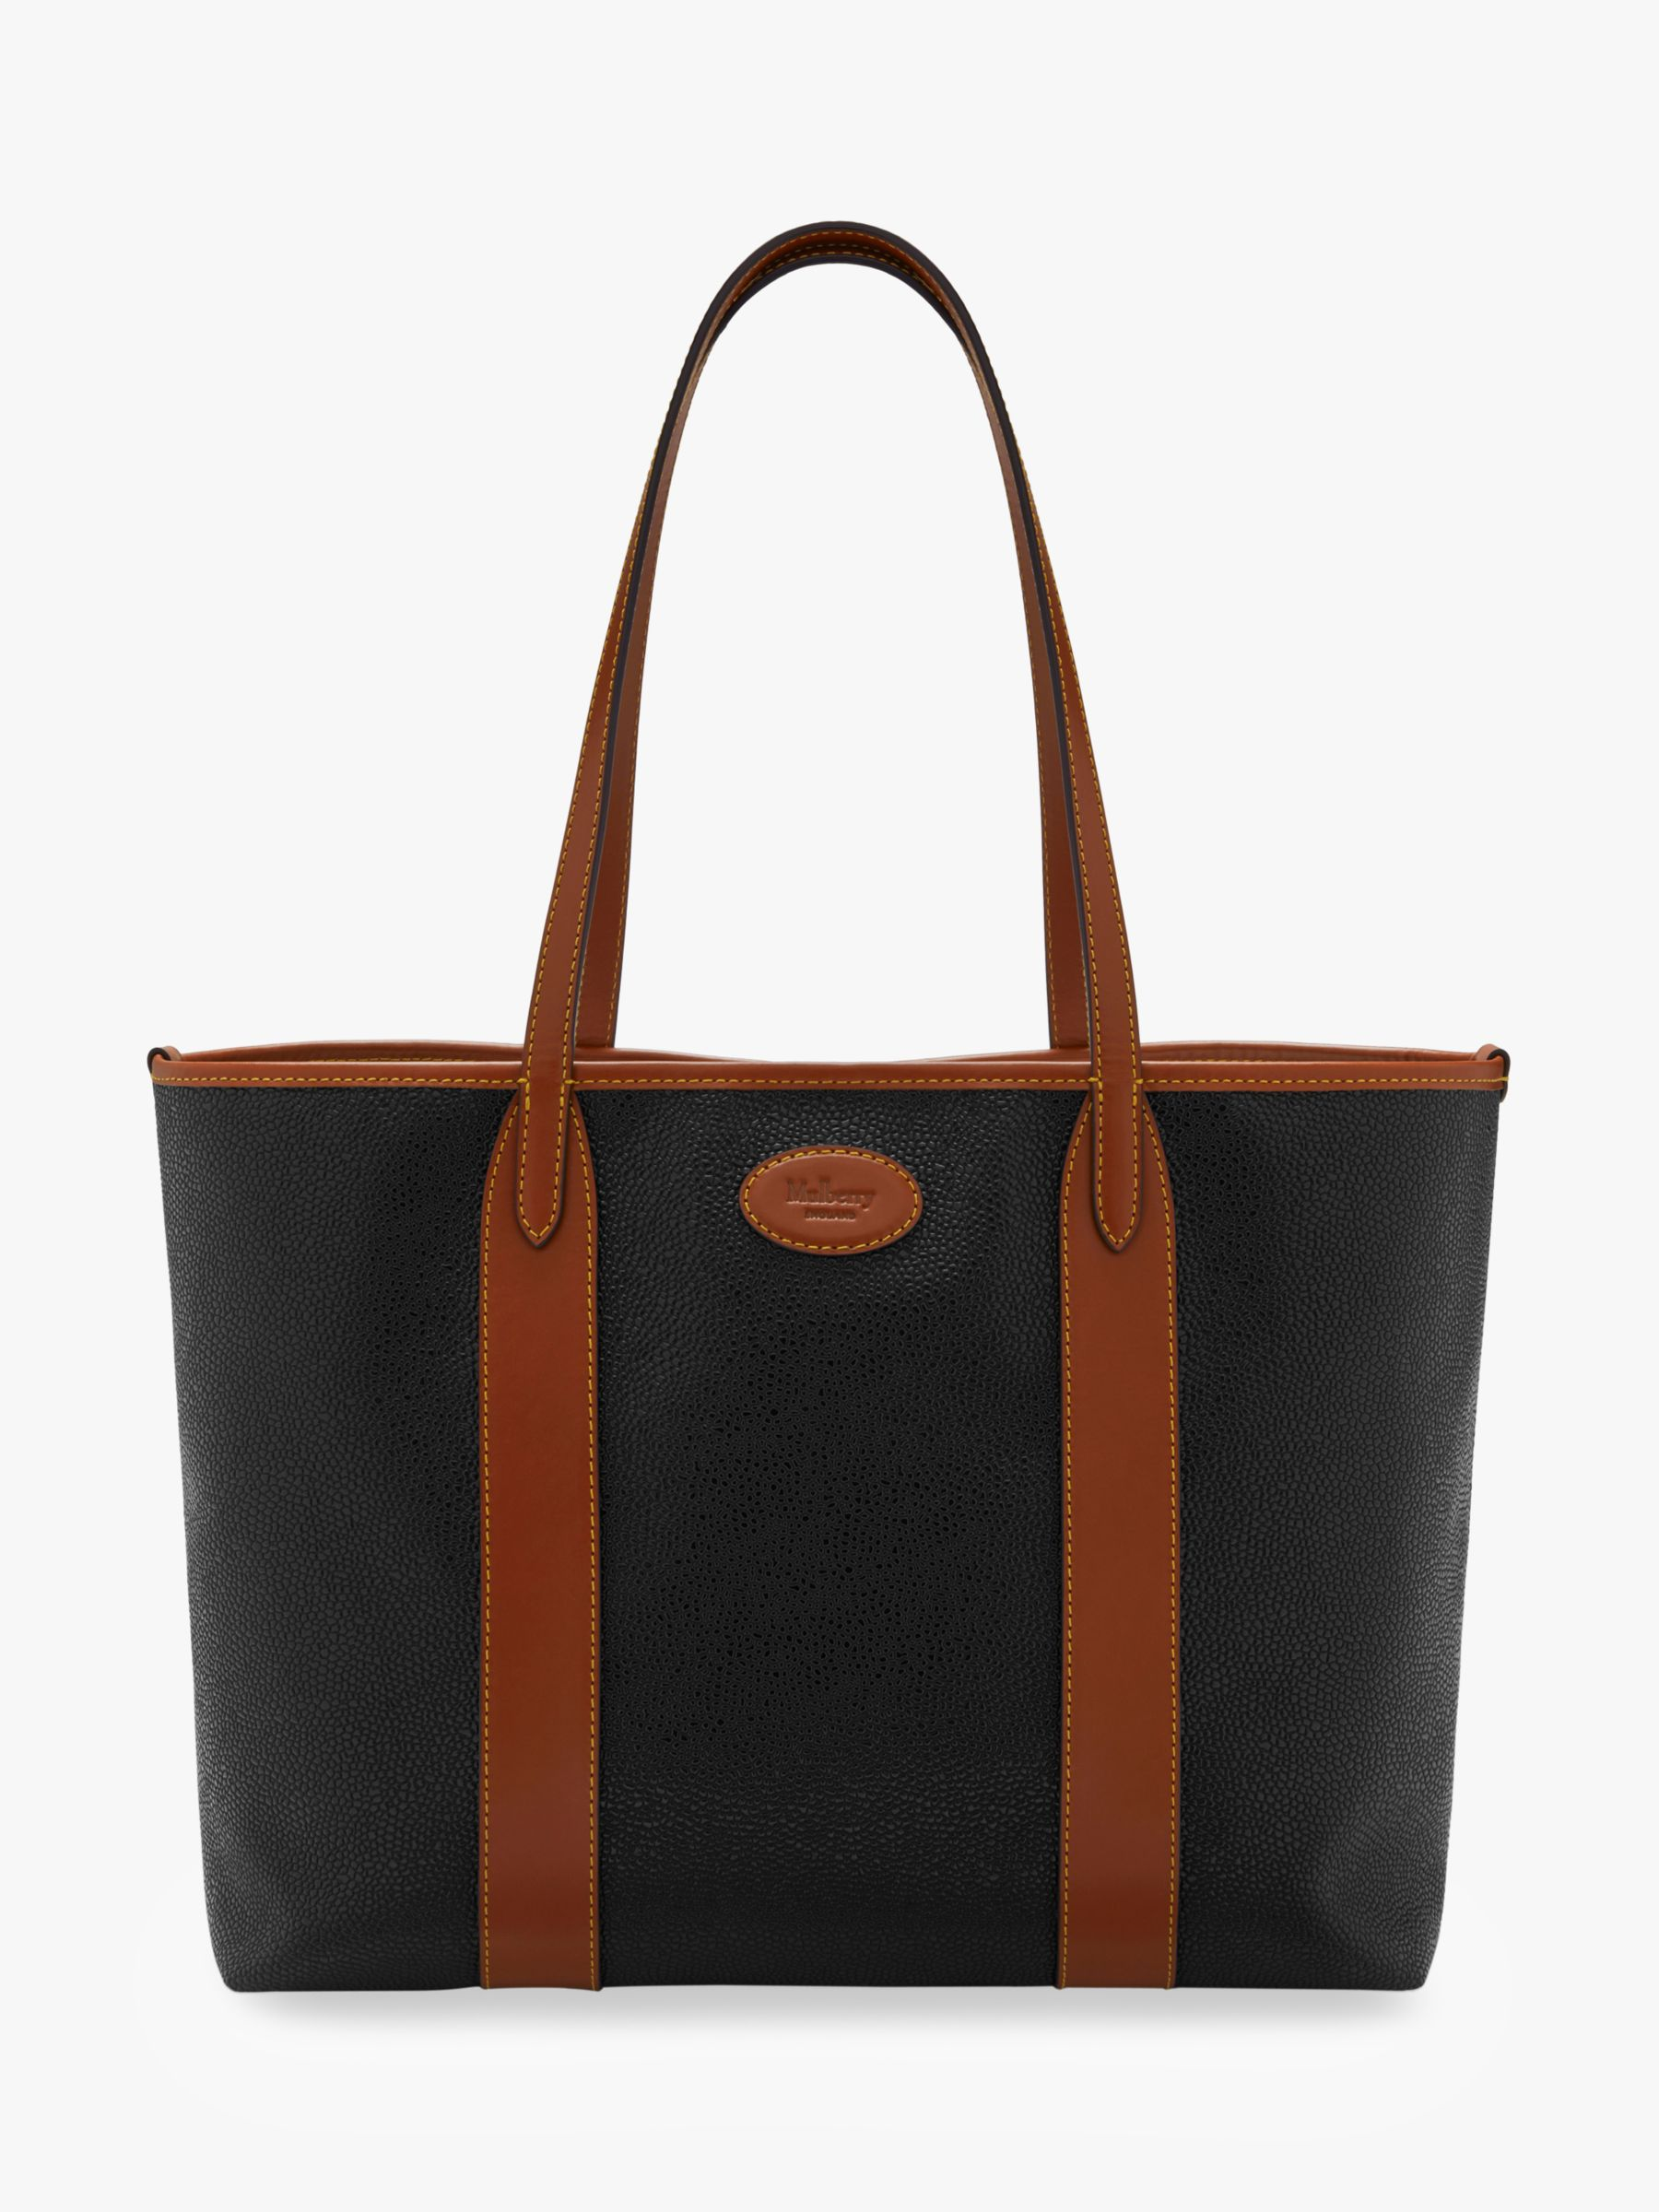 6f346cab326 Mulberry Bayswater Scotchgrain Tote Bag at John Lewis   Partners